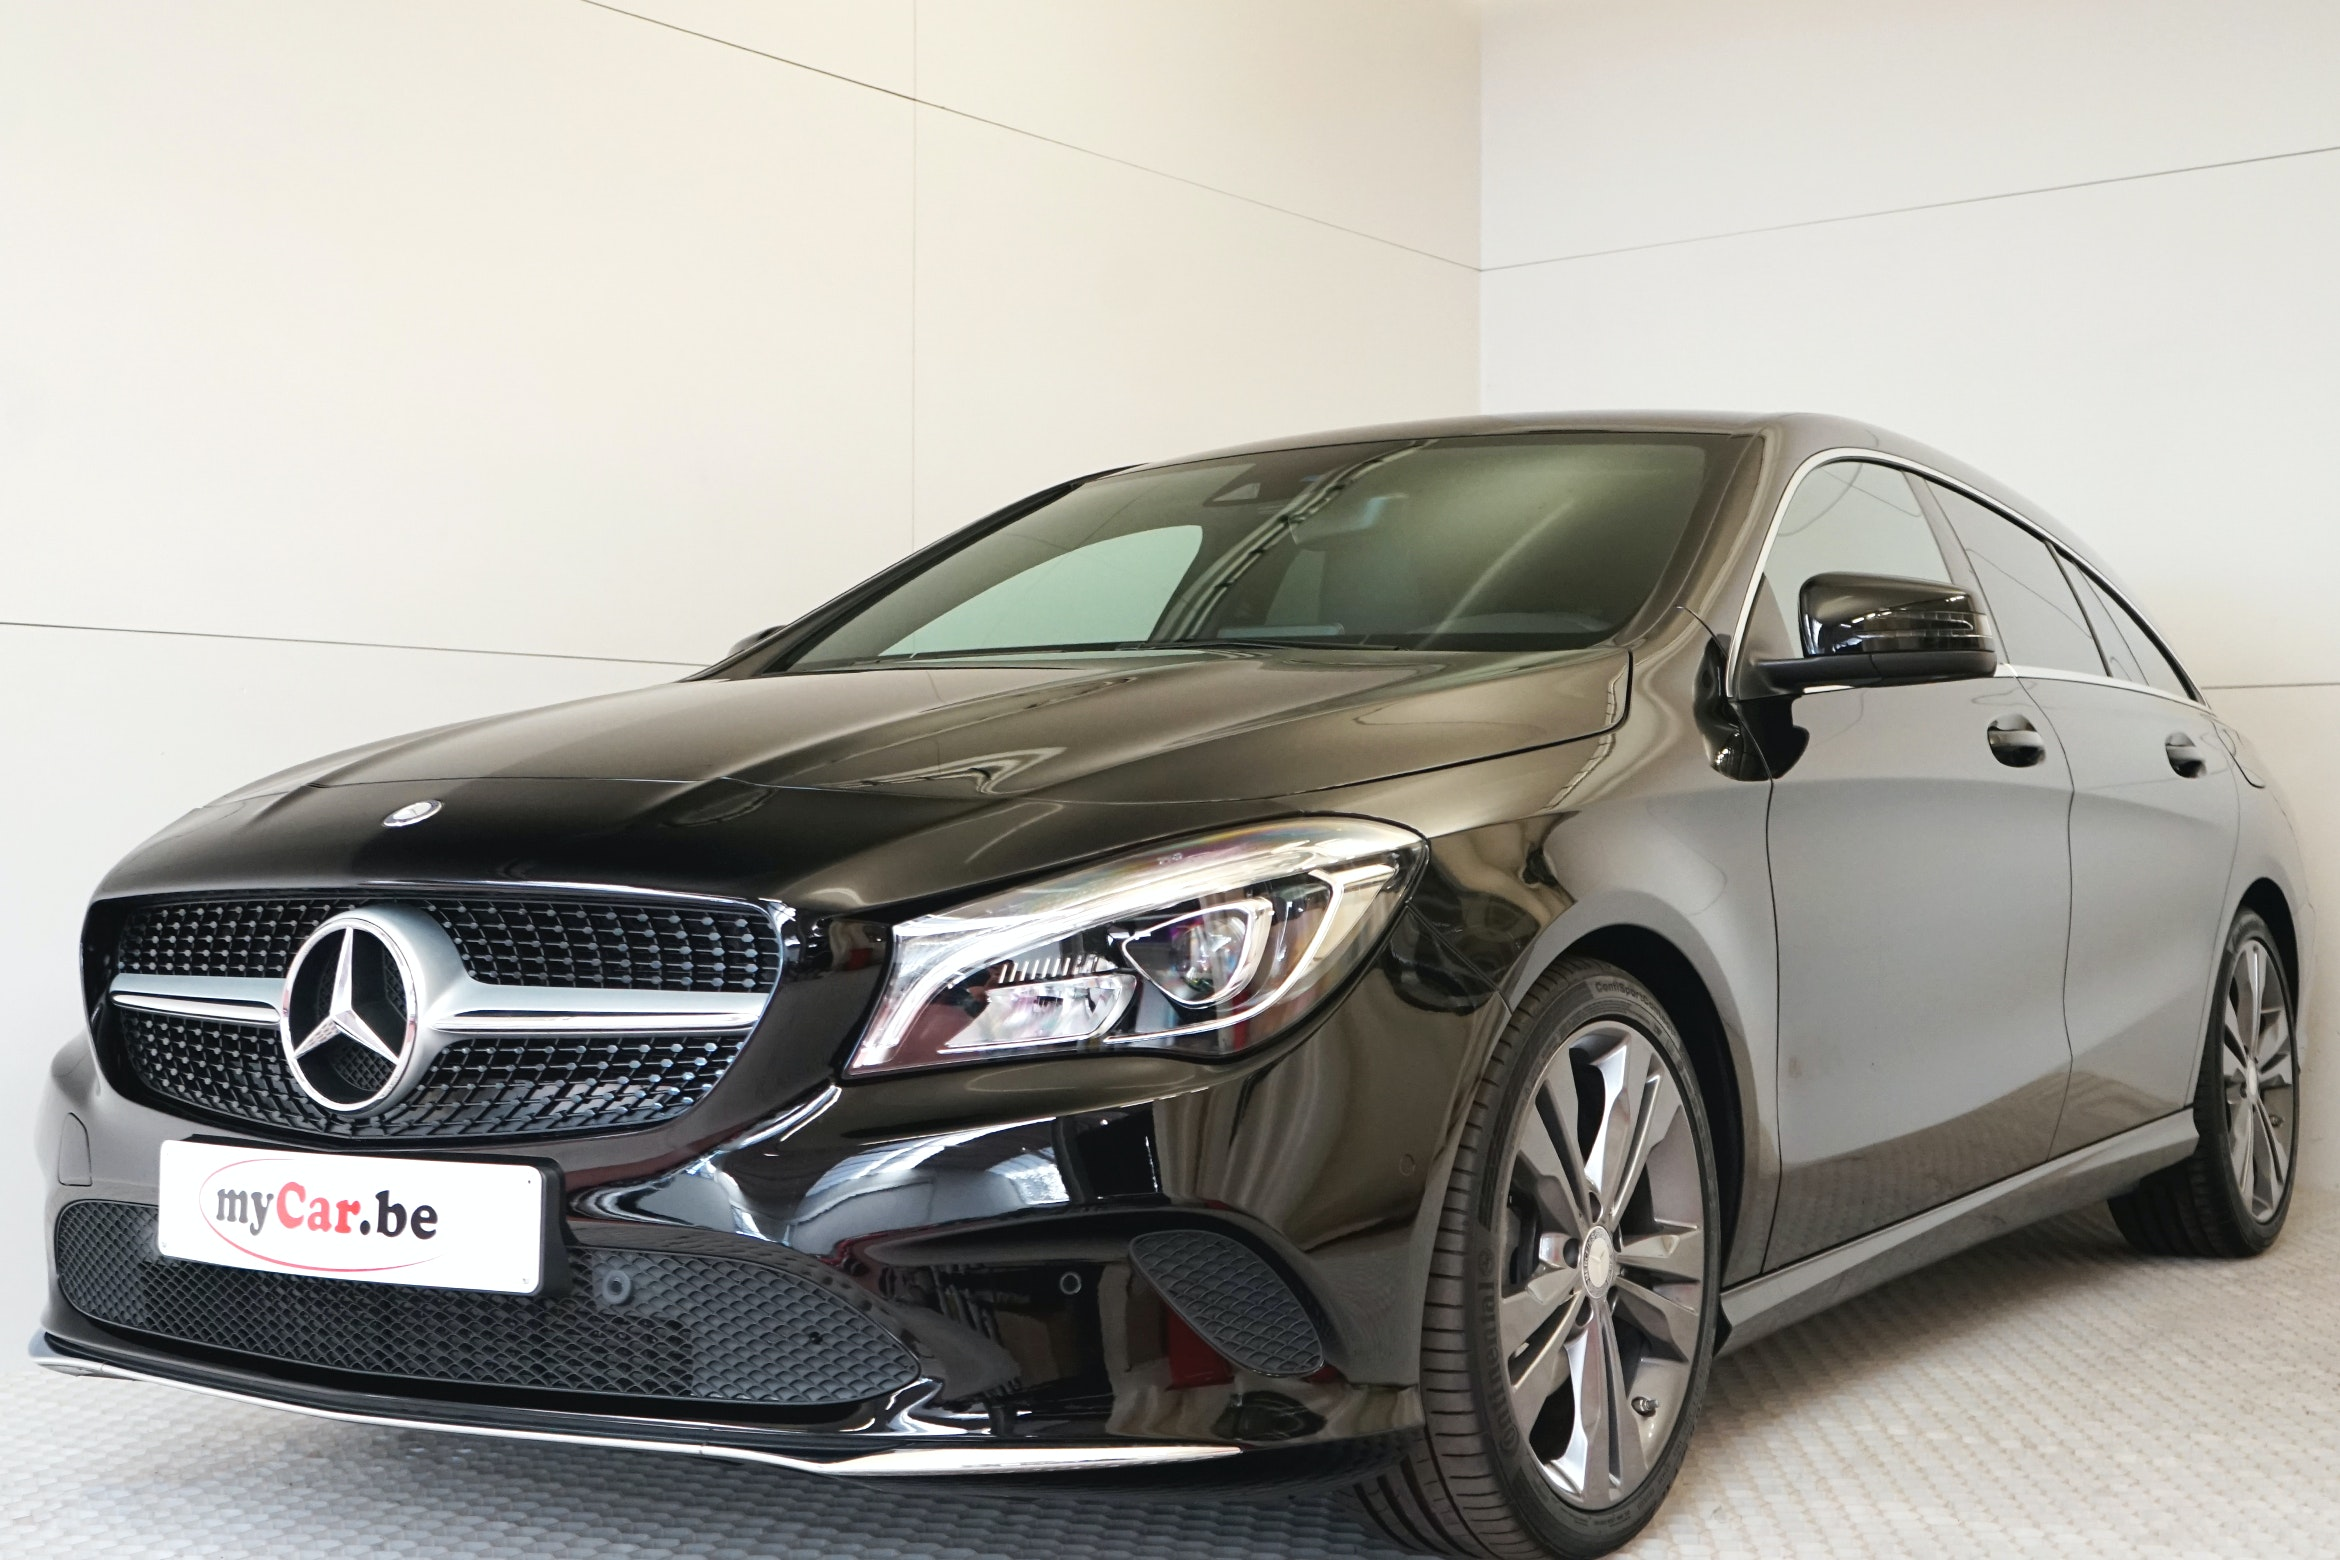 Mercedes Benz Cla 180 Shooting Brake Urban Mycar Be Is The Specialist In Almost New Cars